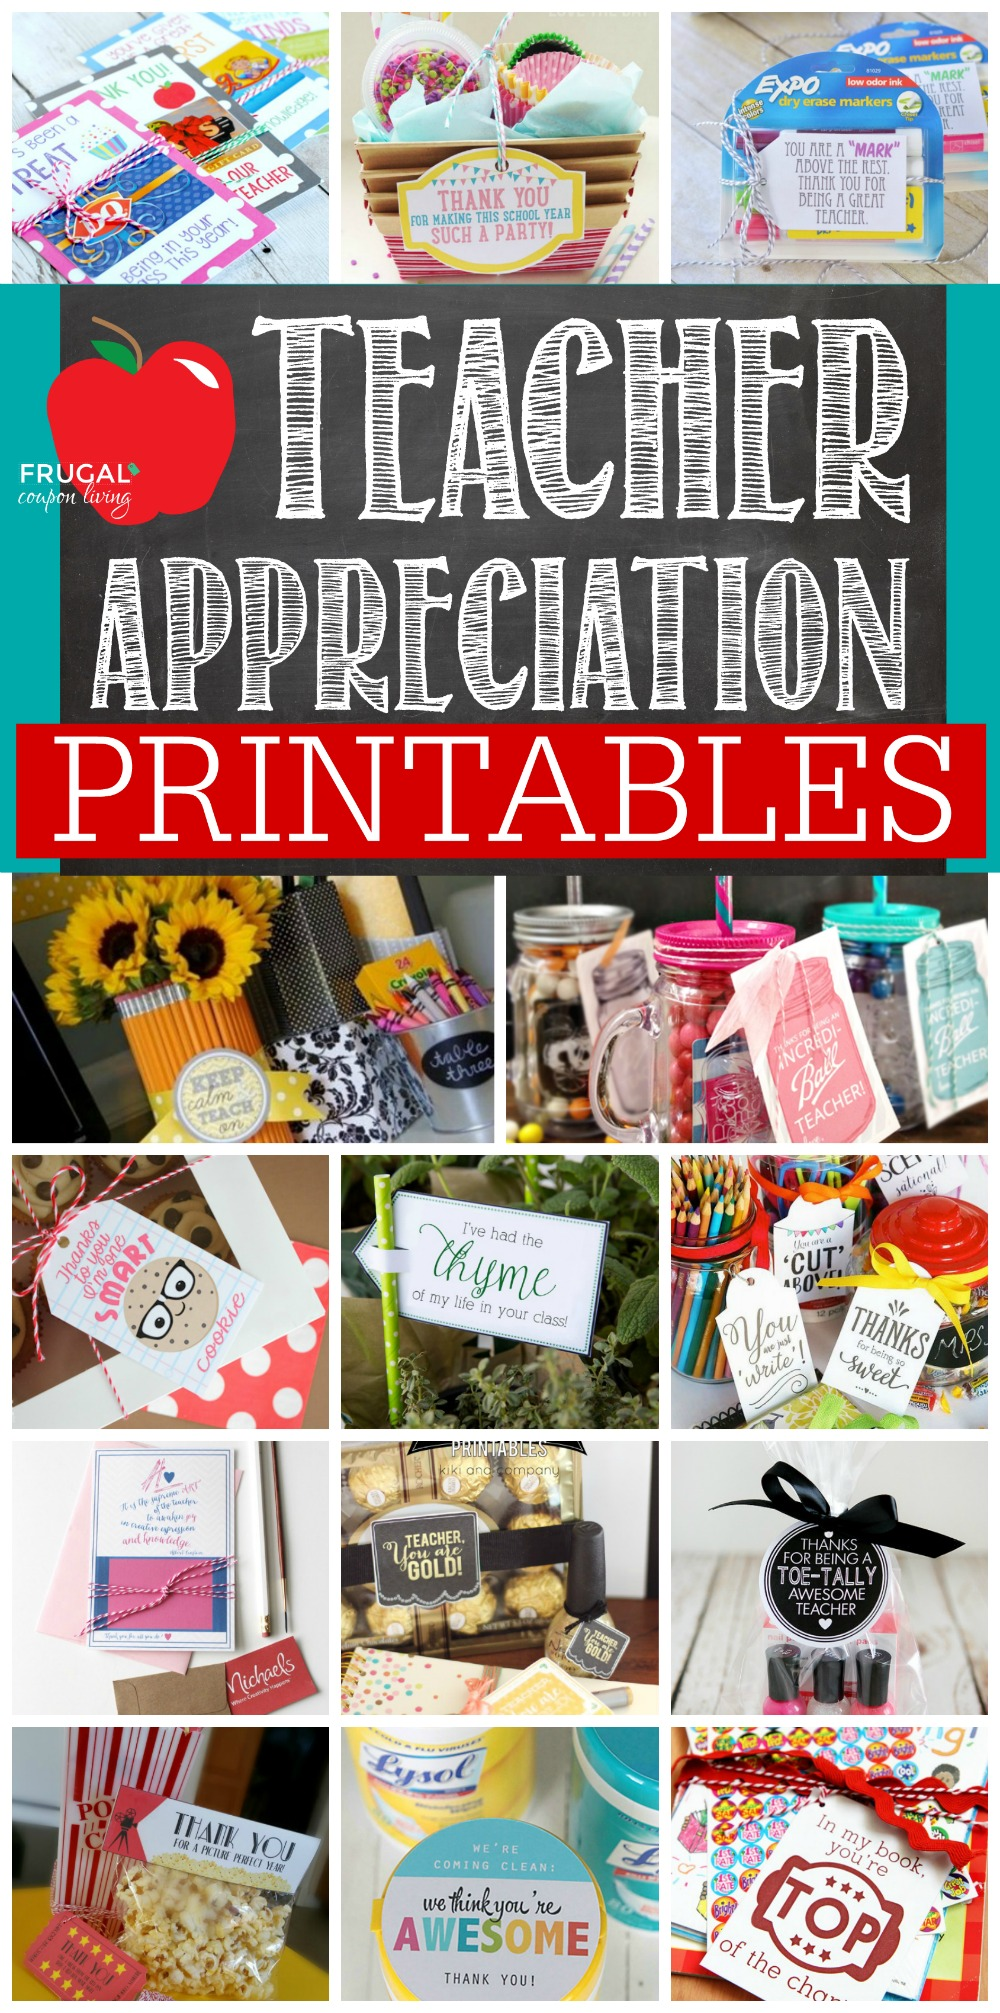 Teacher-Appreciation-Printables-Collage-Frugal-Coupon-Living